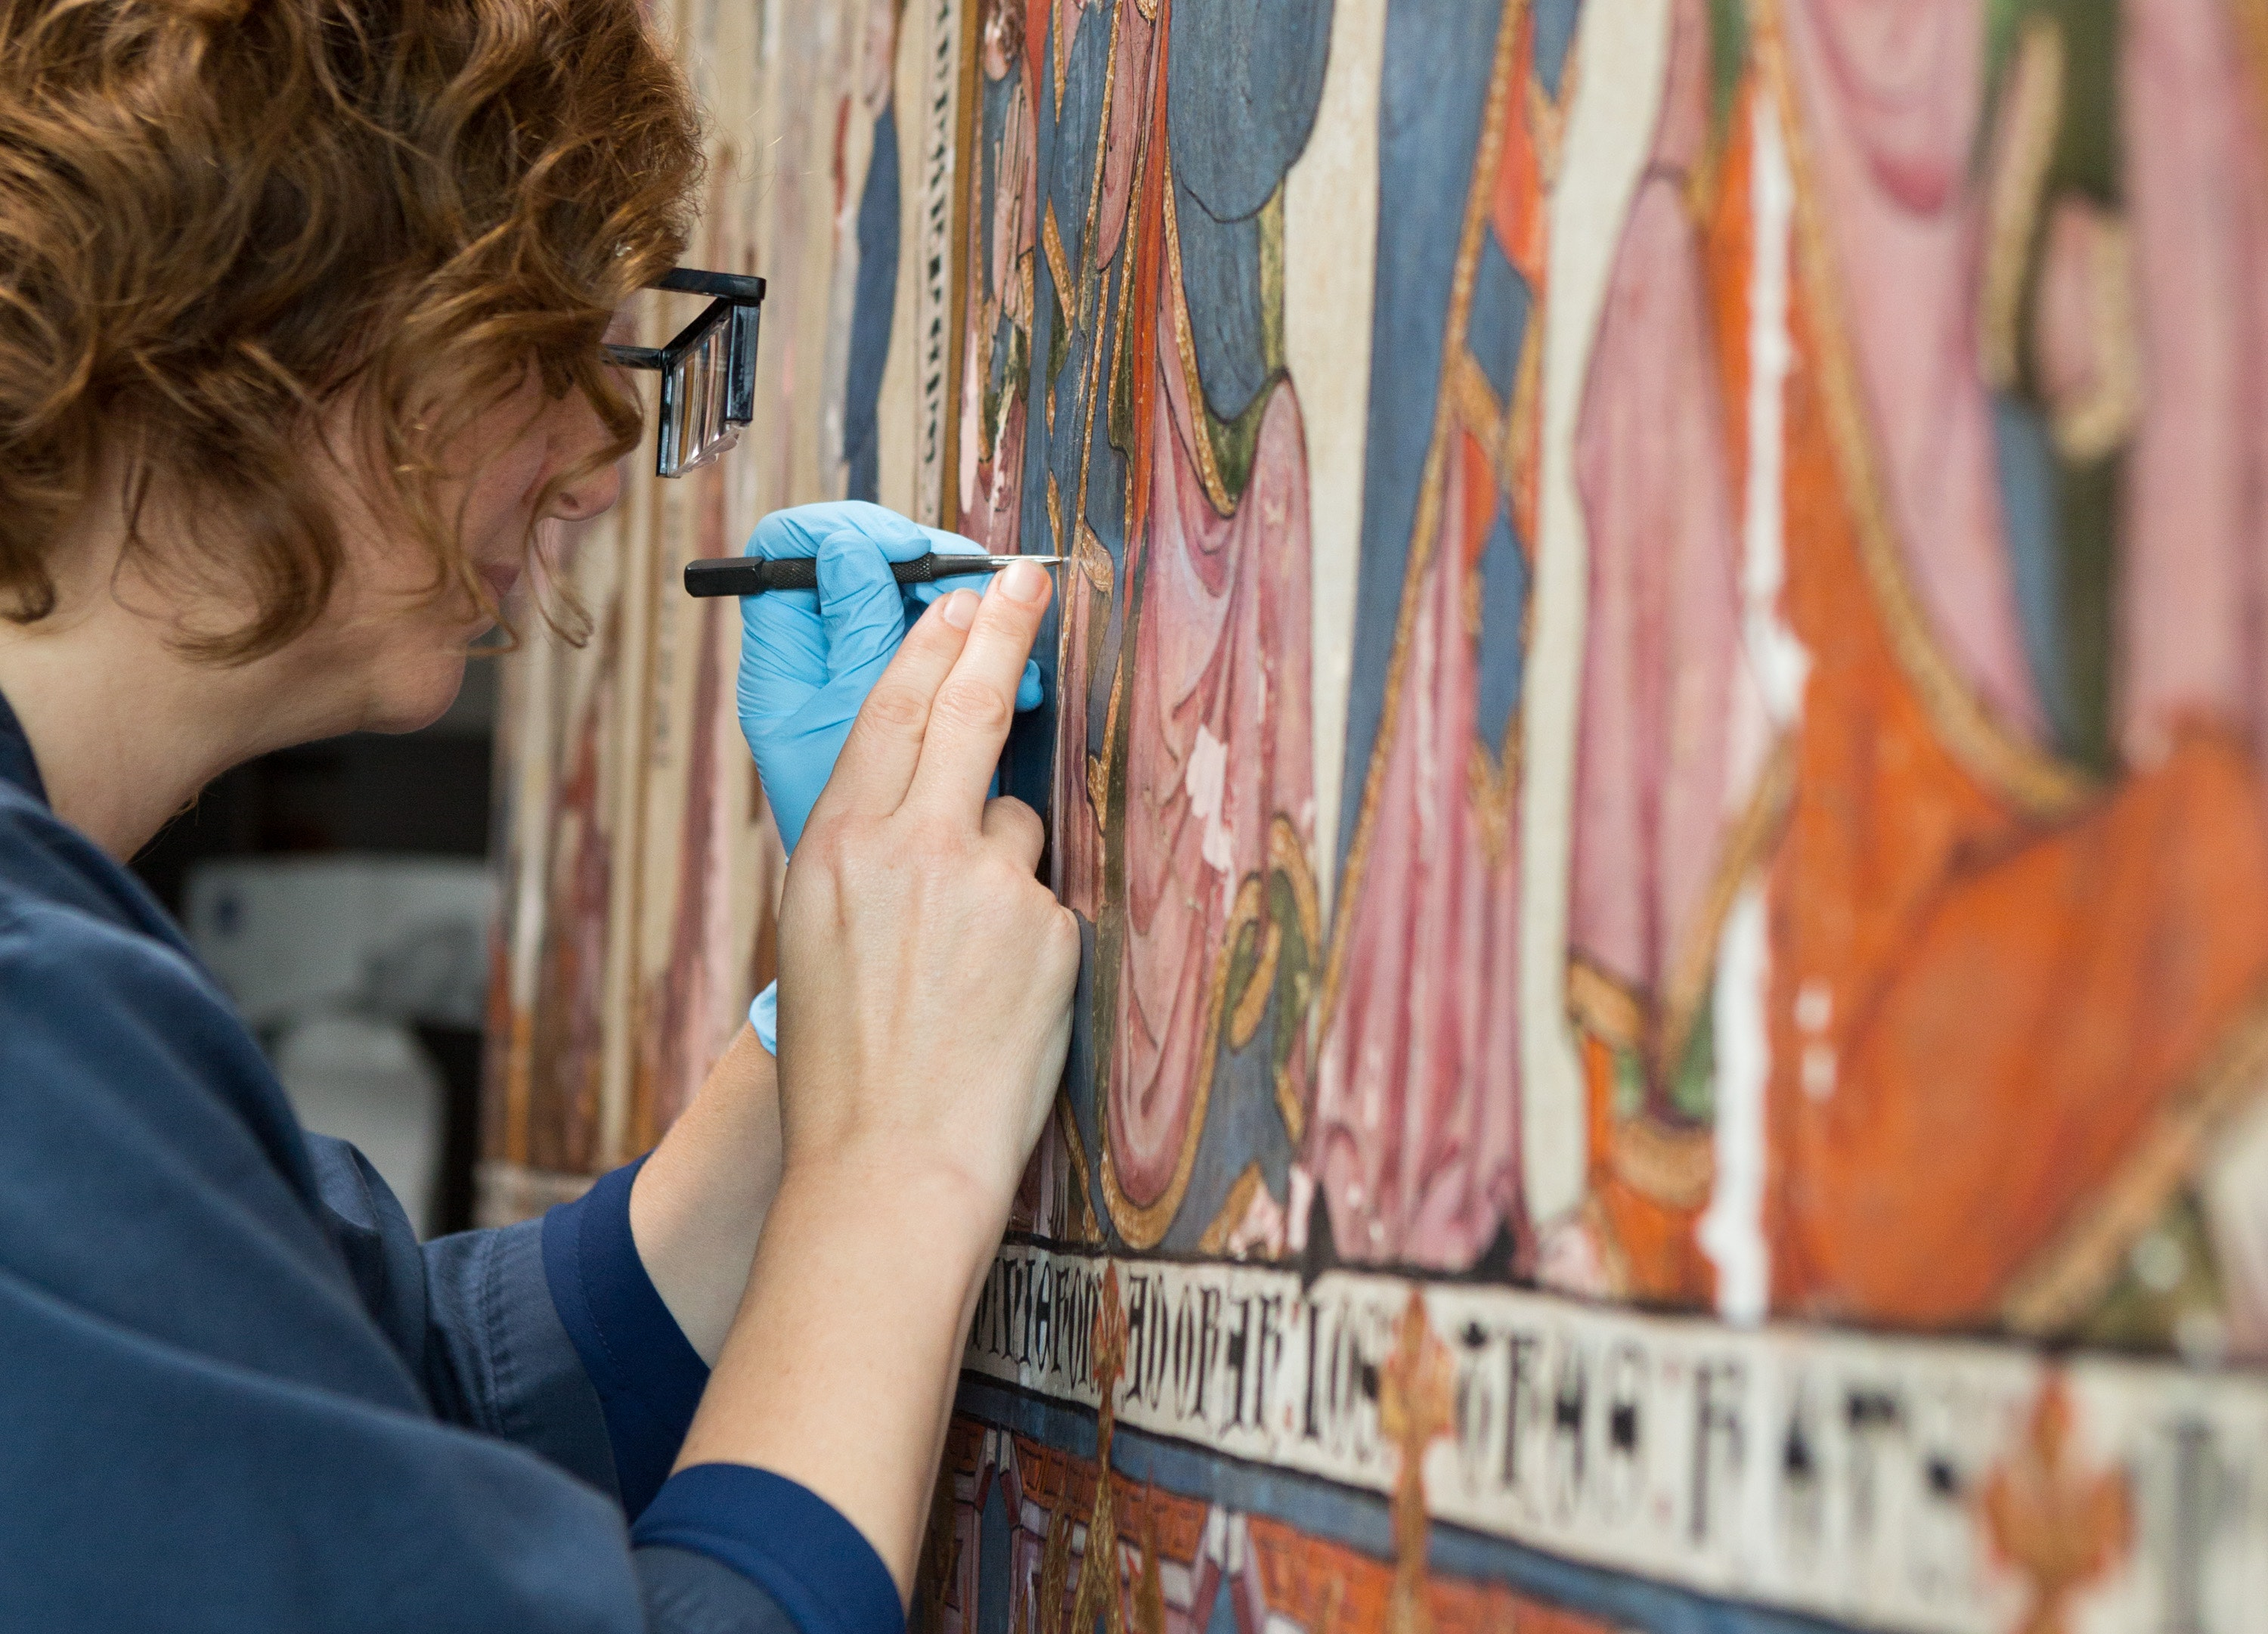 A conservator works on a large painting